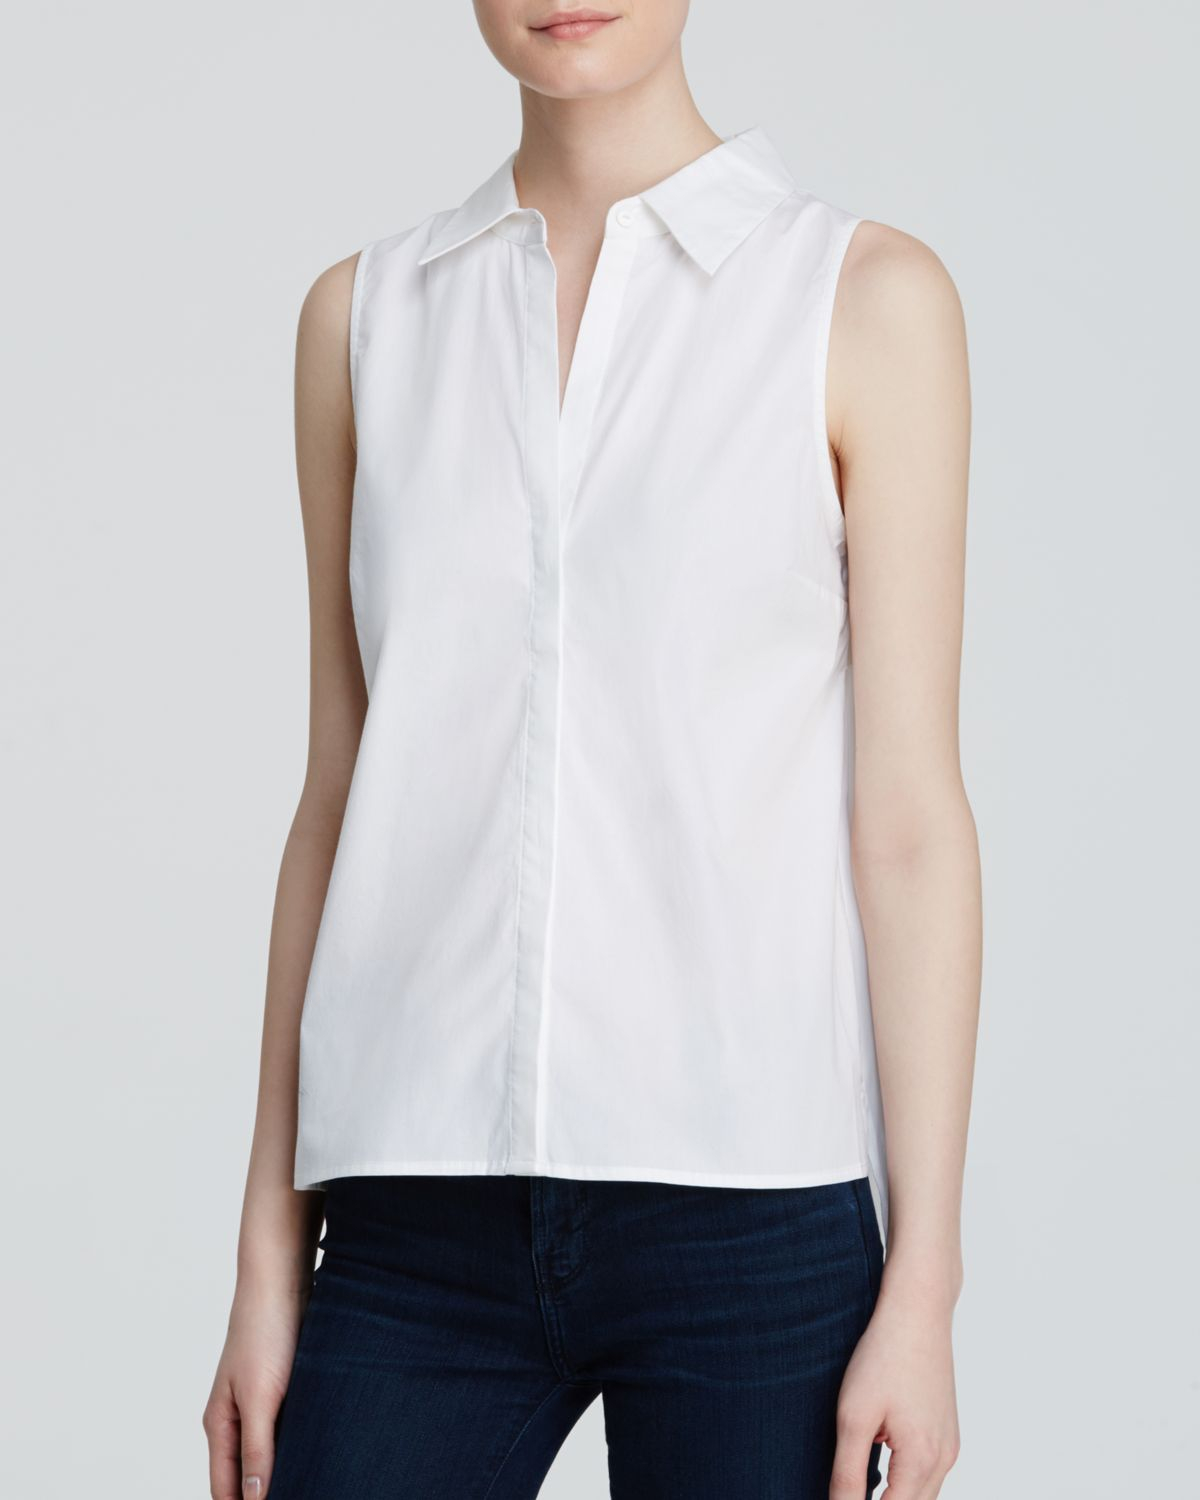 Sleeveless Poplin Shirt: Best-selling style with a touch of stretch for a great fit. Button front and bust darts waist seams for shaping. Button front and bust darts waist seams for shaping. Cotton/spandex.